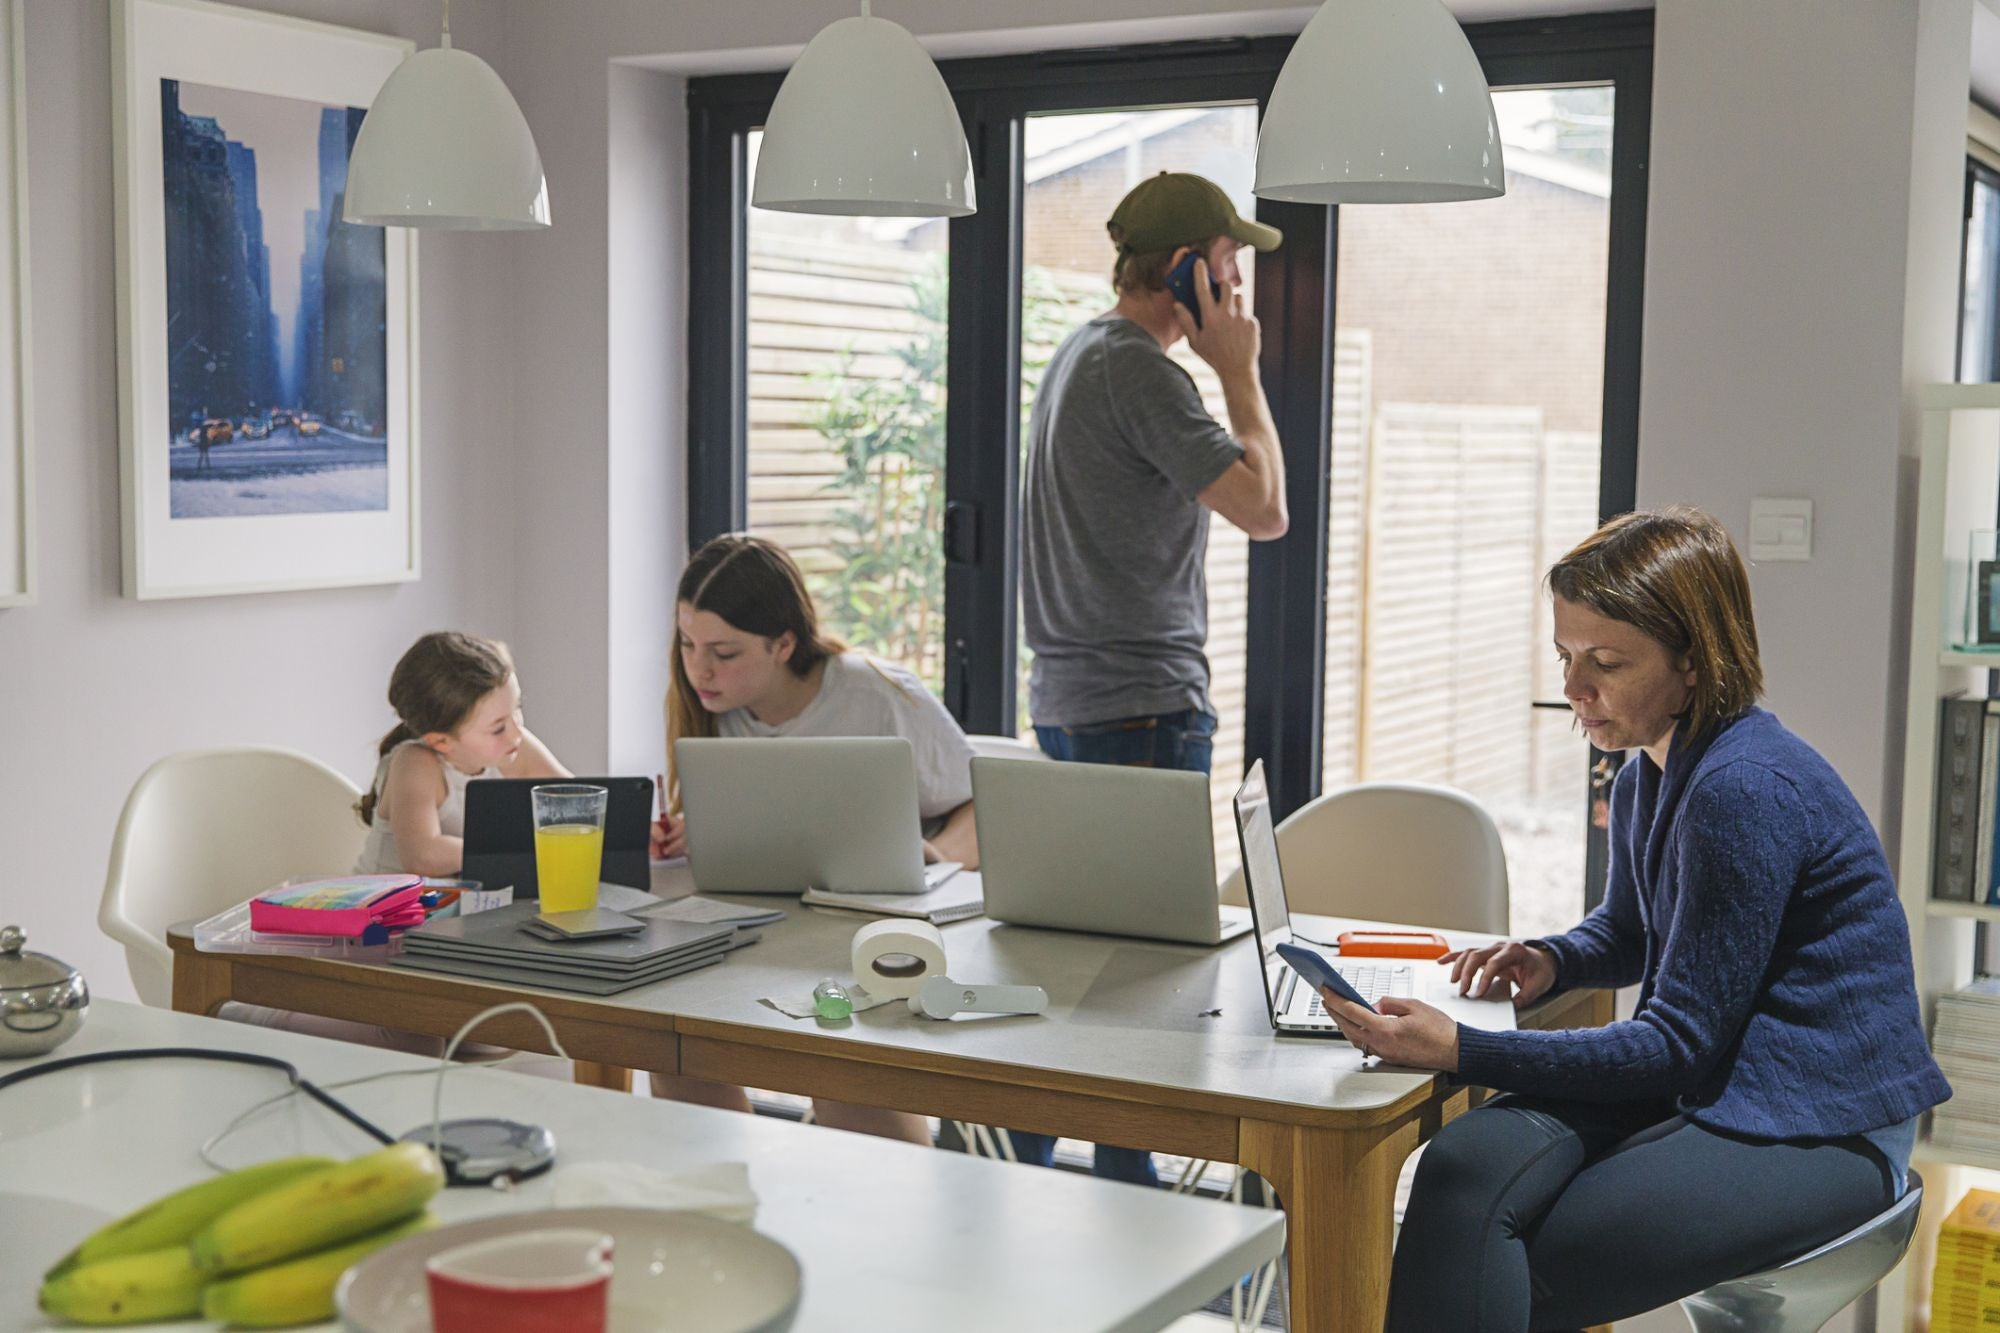 3 Ways Strong Leaders Can Support Work-From-Home Employees